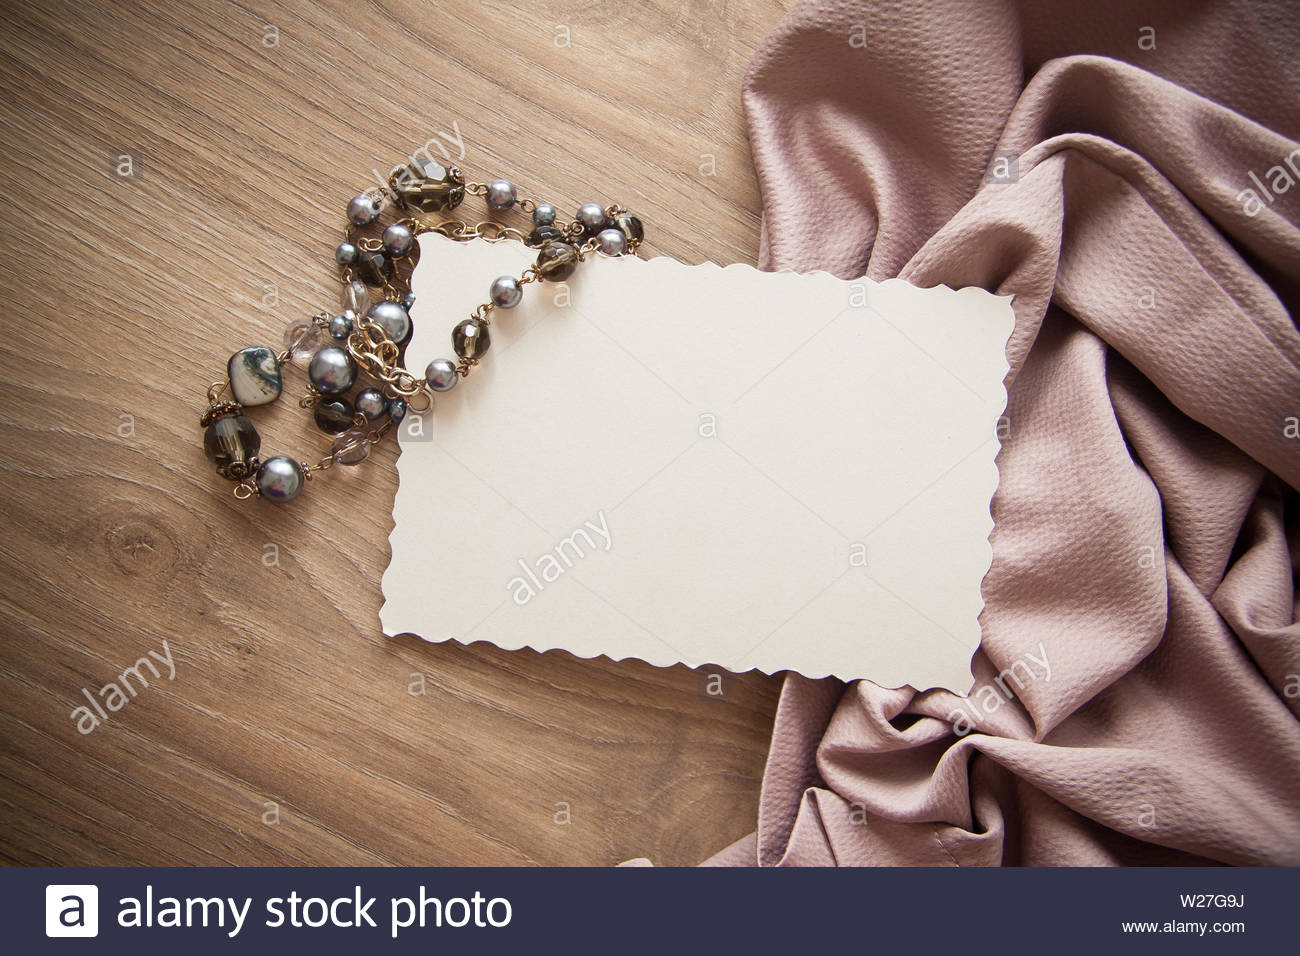 backgrund with black pearls and postcard for text - Stock Image